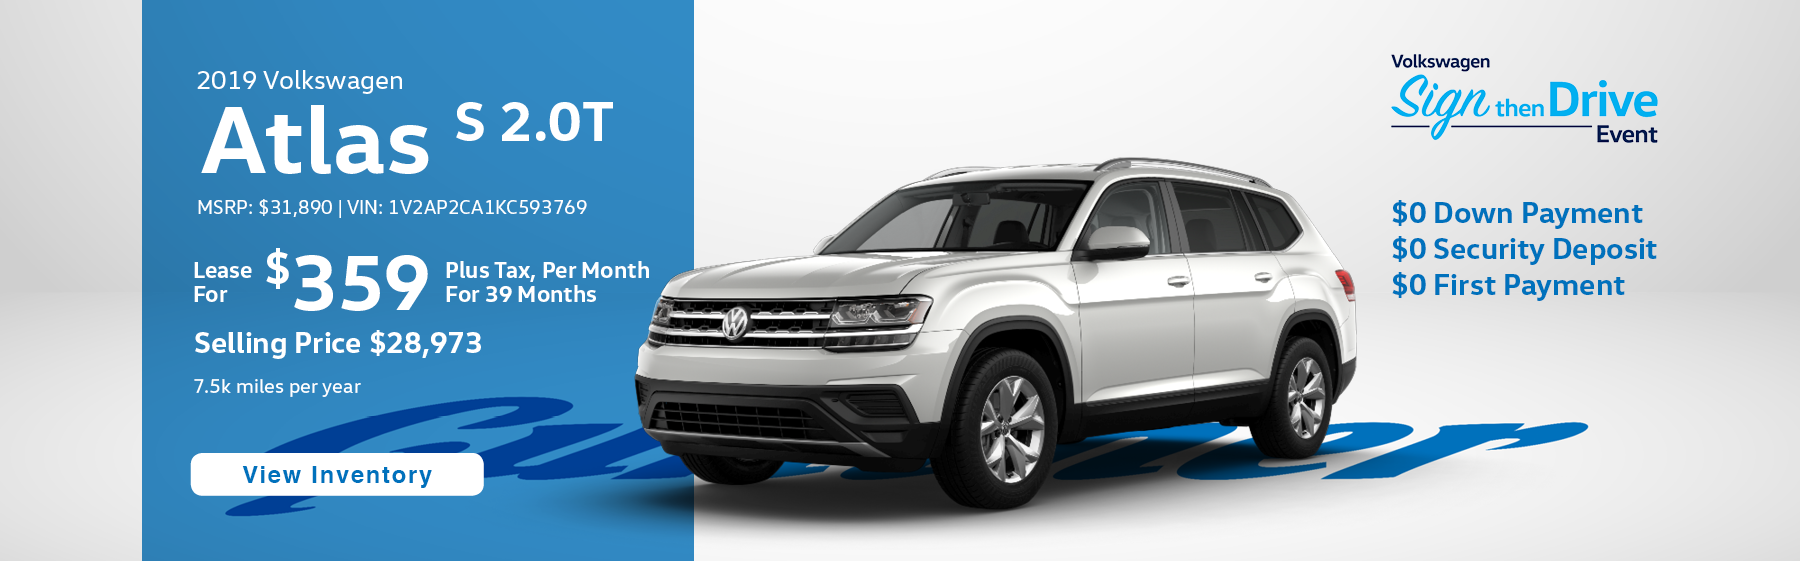 Lease the 2019 Atlas S 2.0T for $359 per month, plus tax for 39 months.